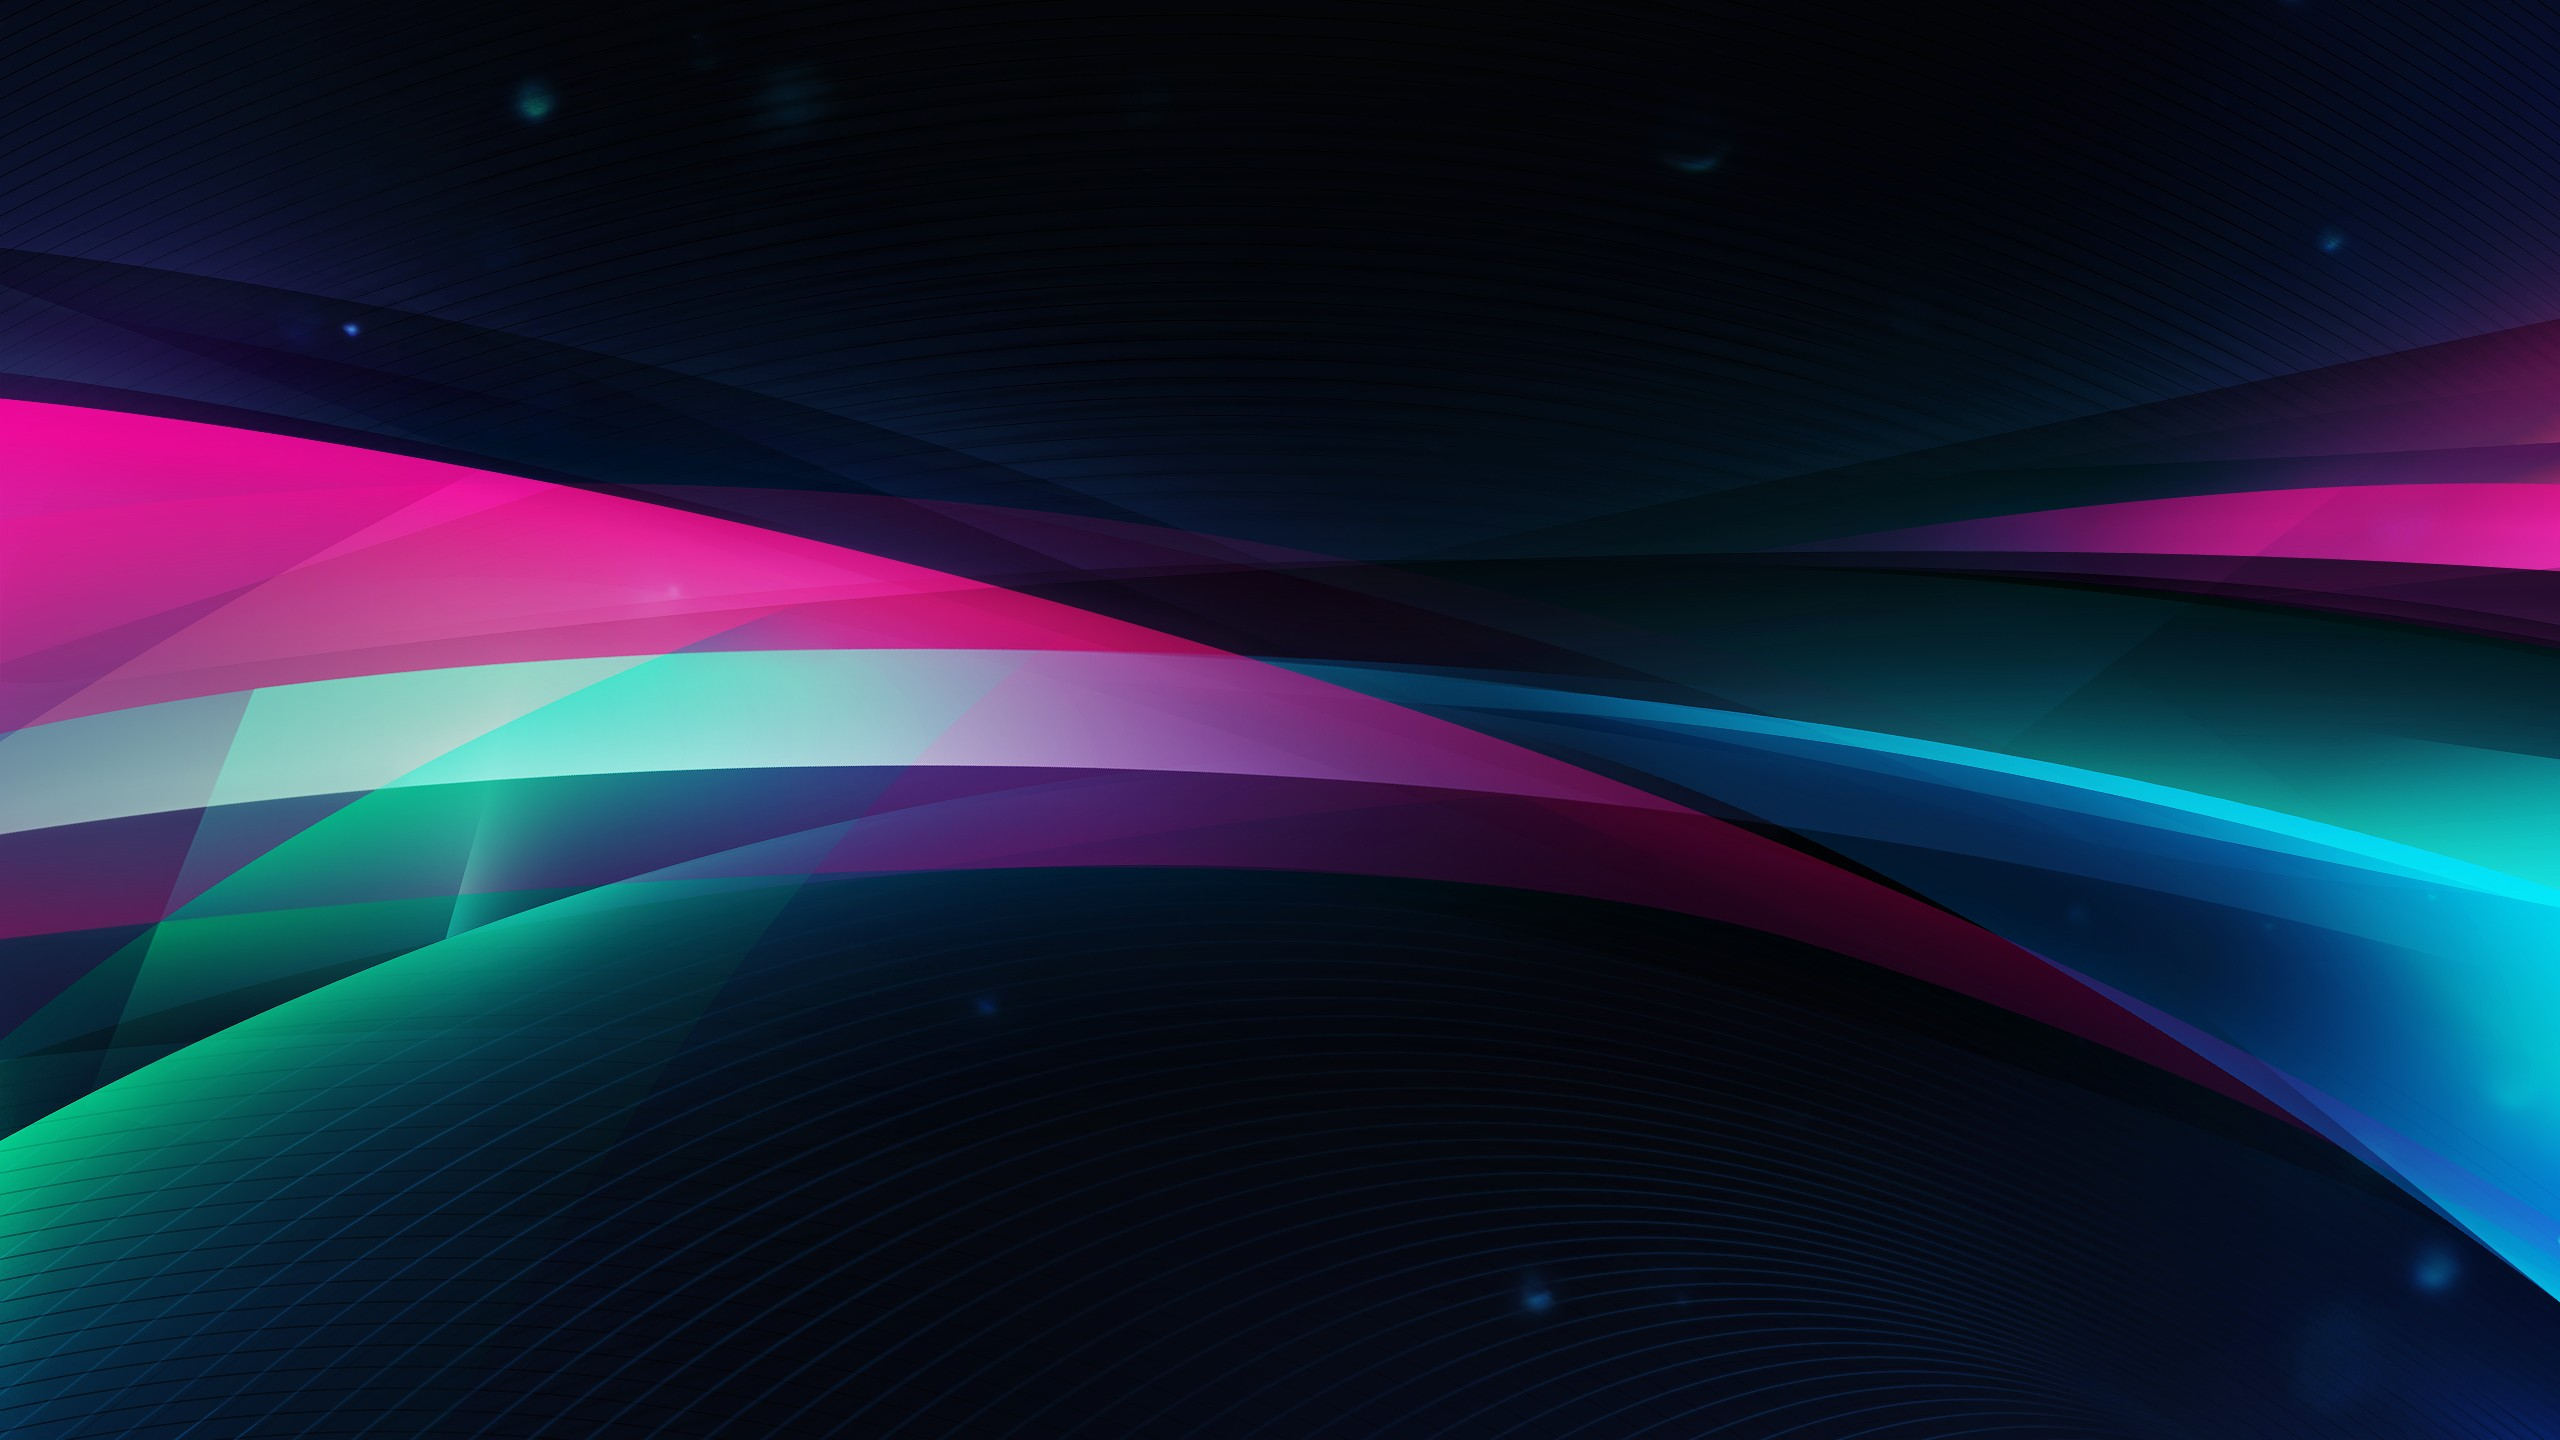 2560x1440 Abstract Galaxy Background YouTube Channel Cover 2560x1440